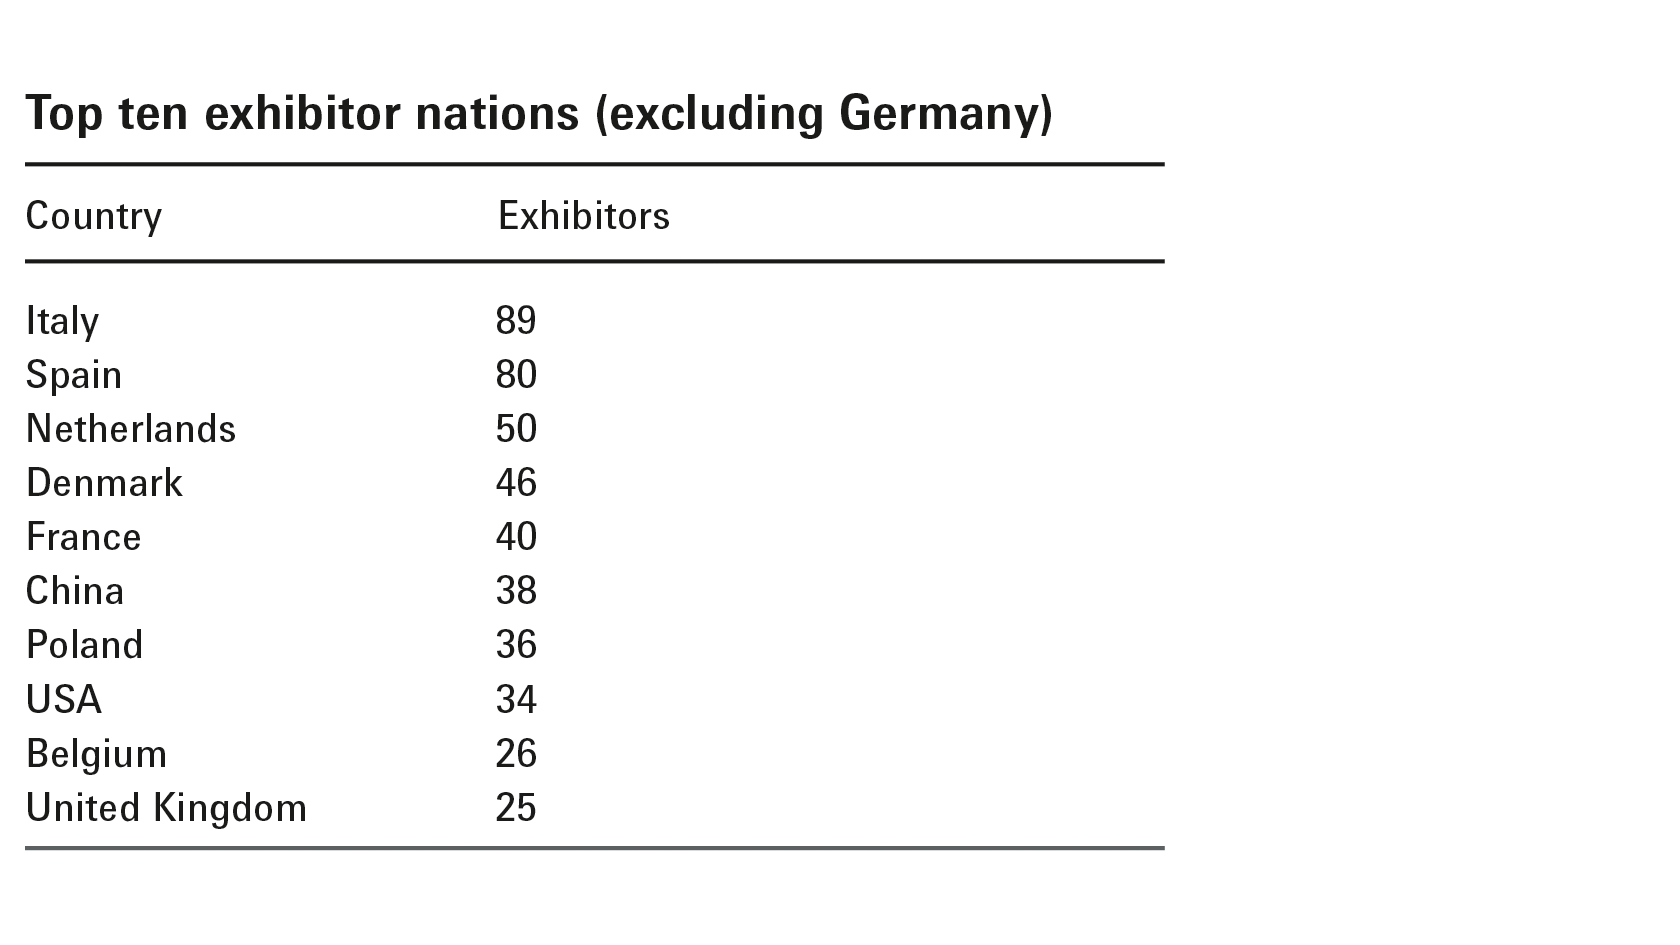 Top ten exhibitor nations (excluding Germany)